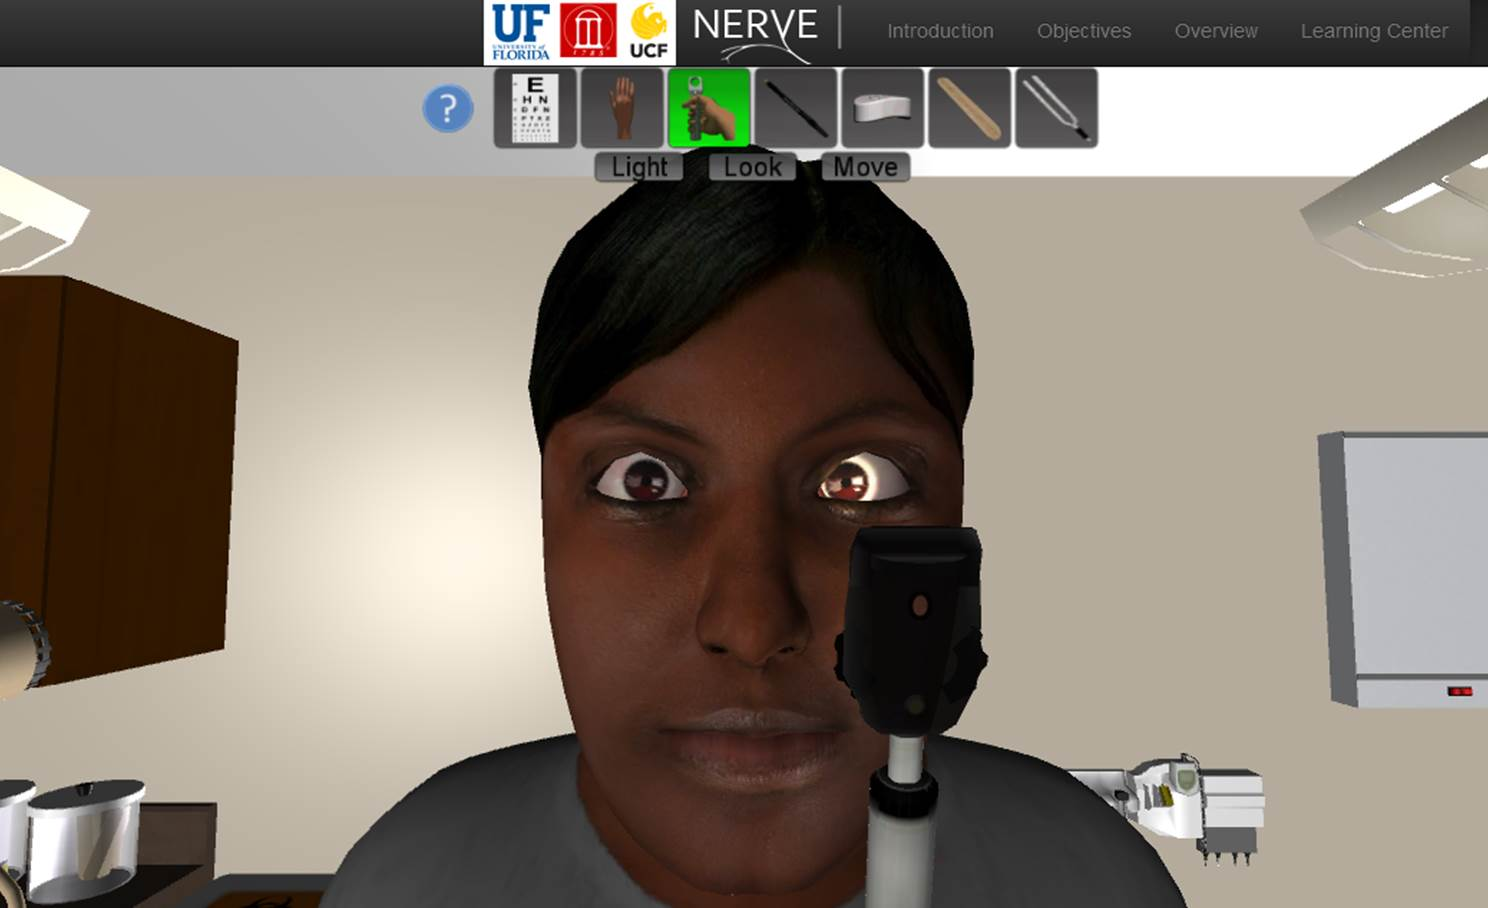 Interact with virtual patients suffering from cranial nerve disorders.